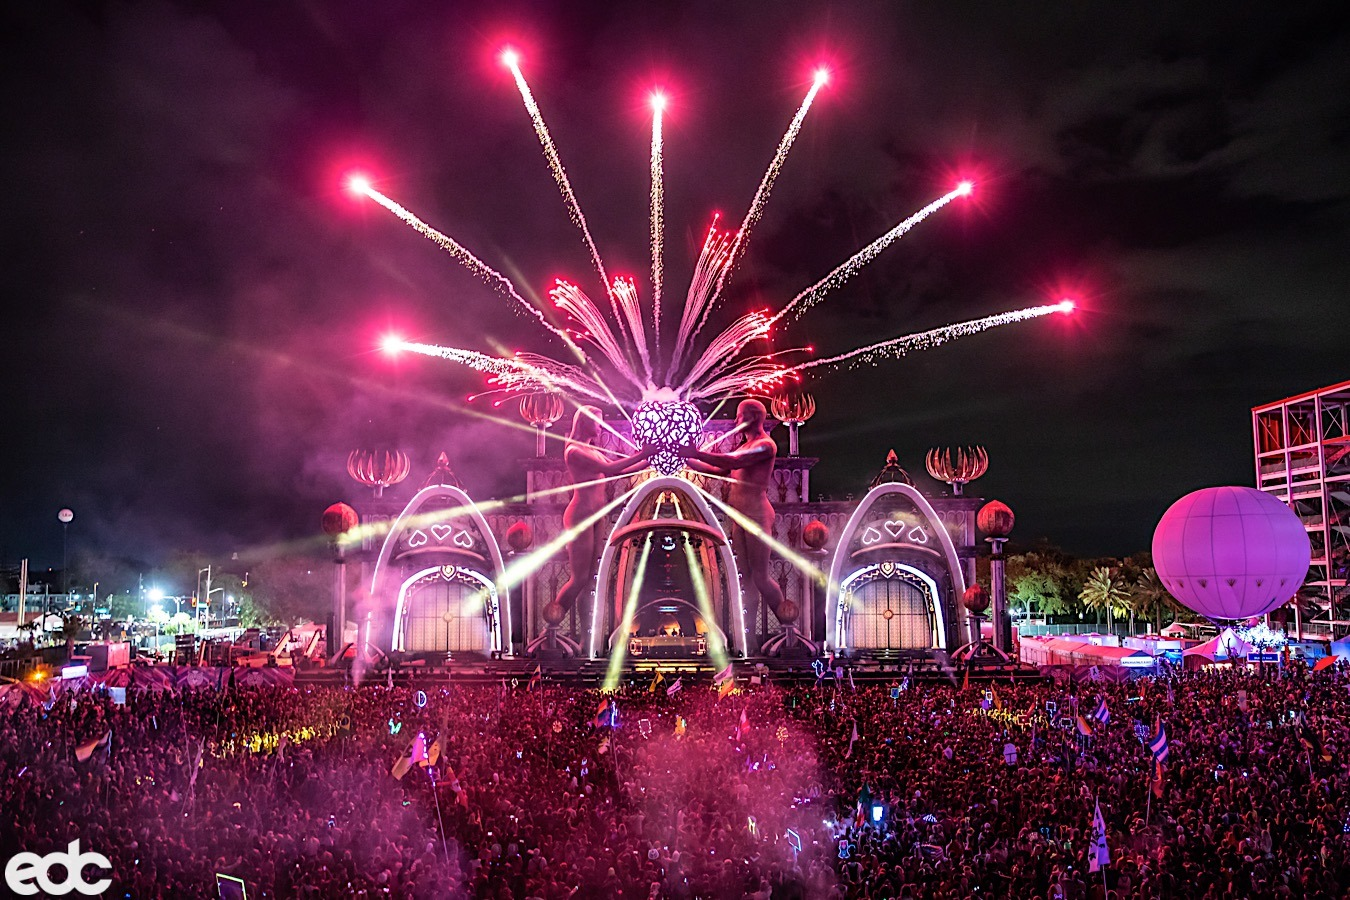 EDC Orlando 2019 Releases Biggest Lineup To Date